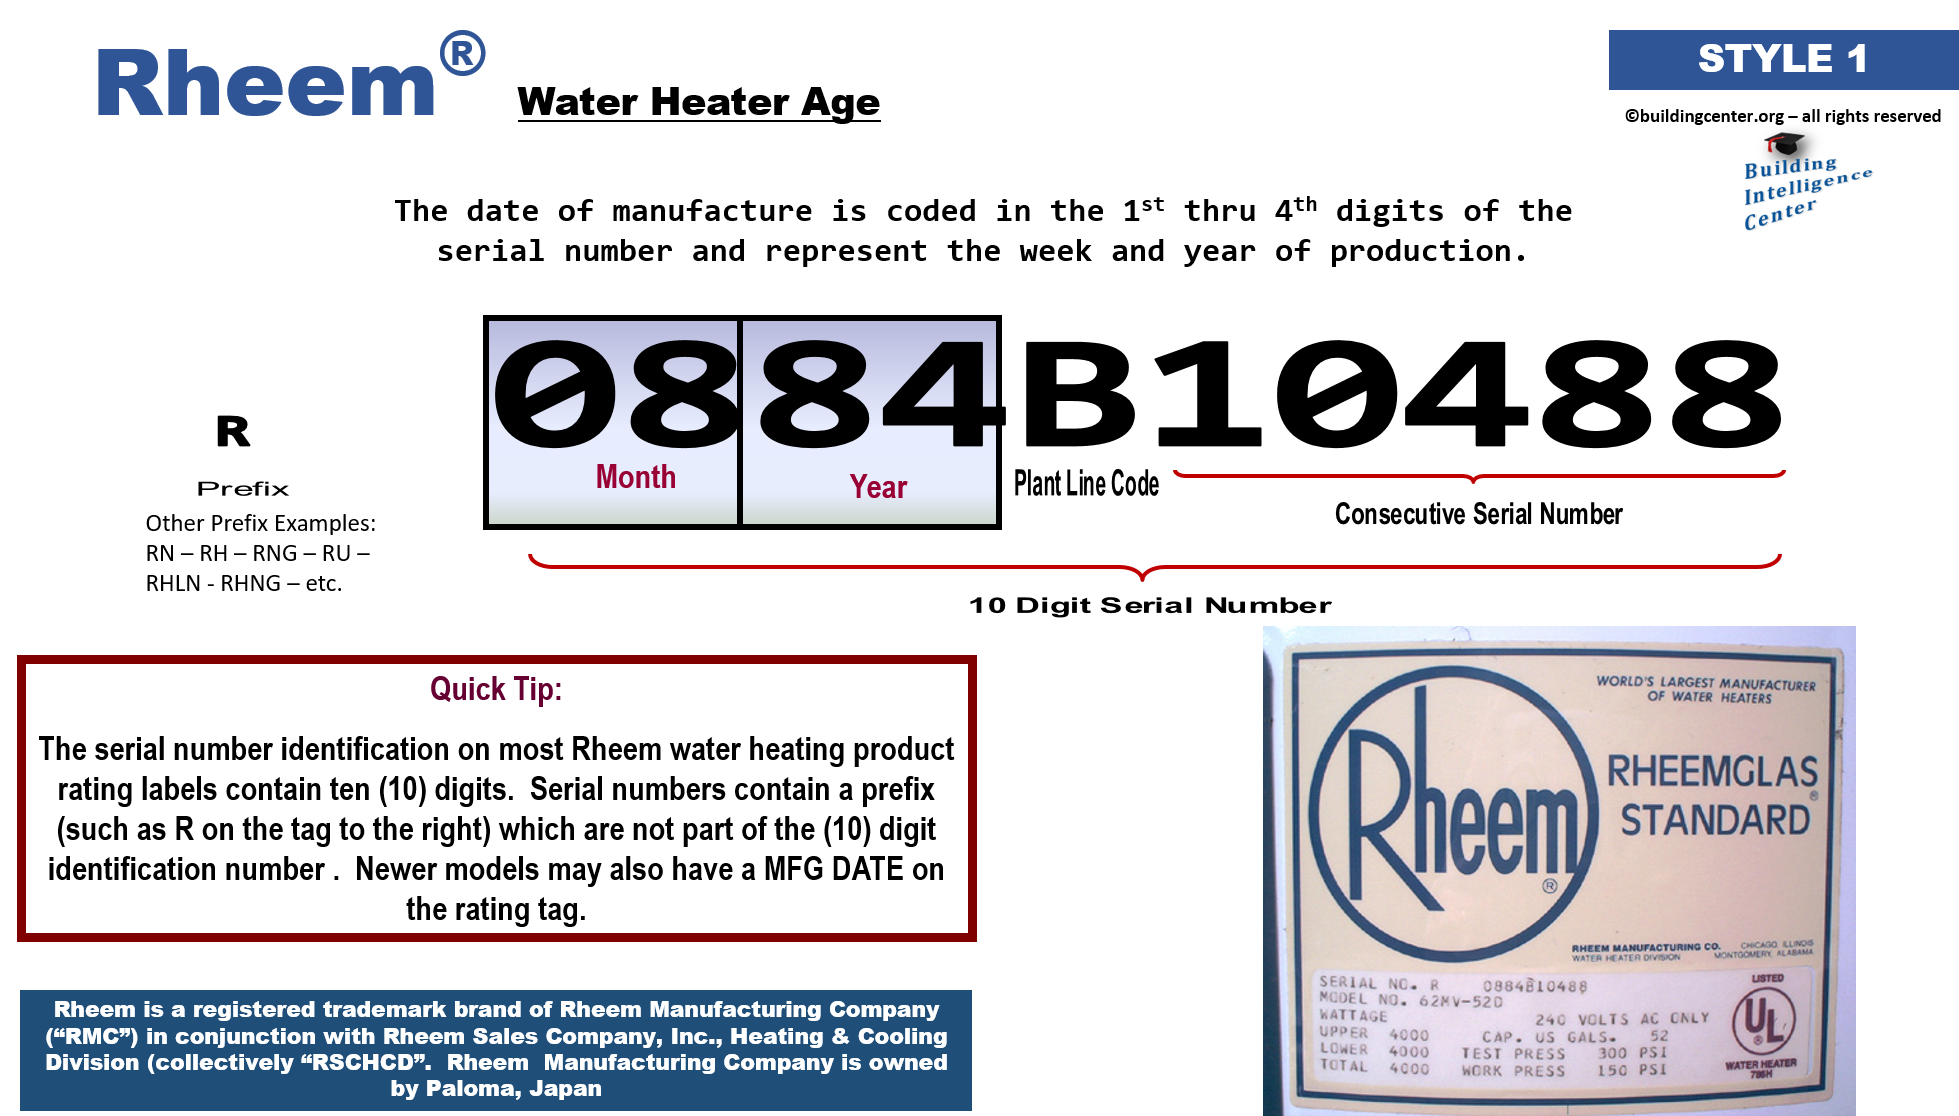 Rheem Water Heater age - Building Intelligence Center